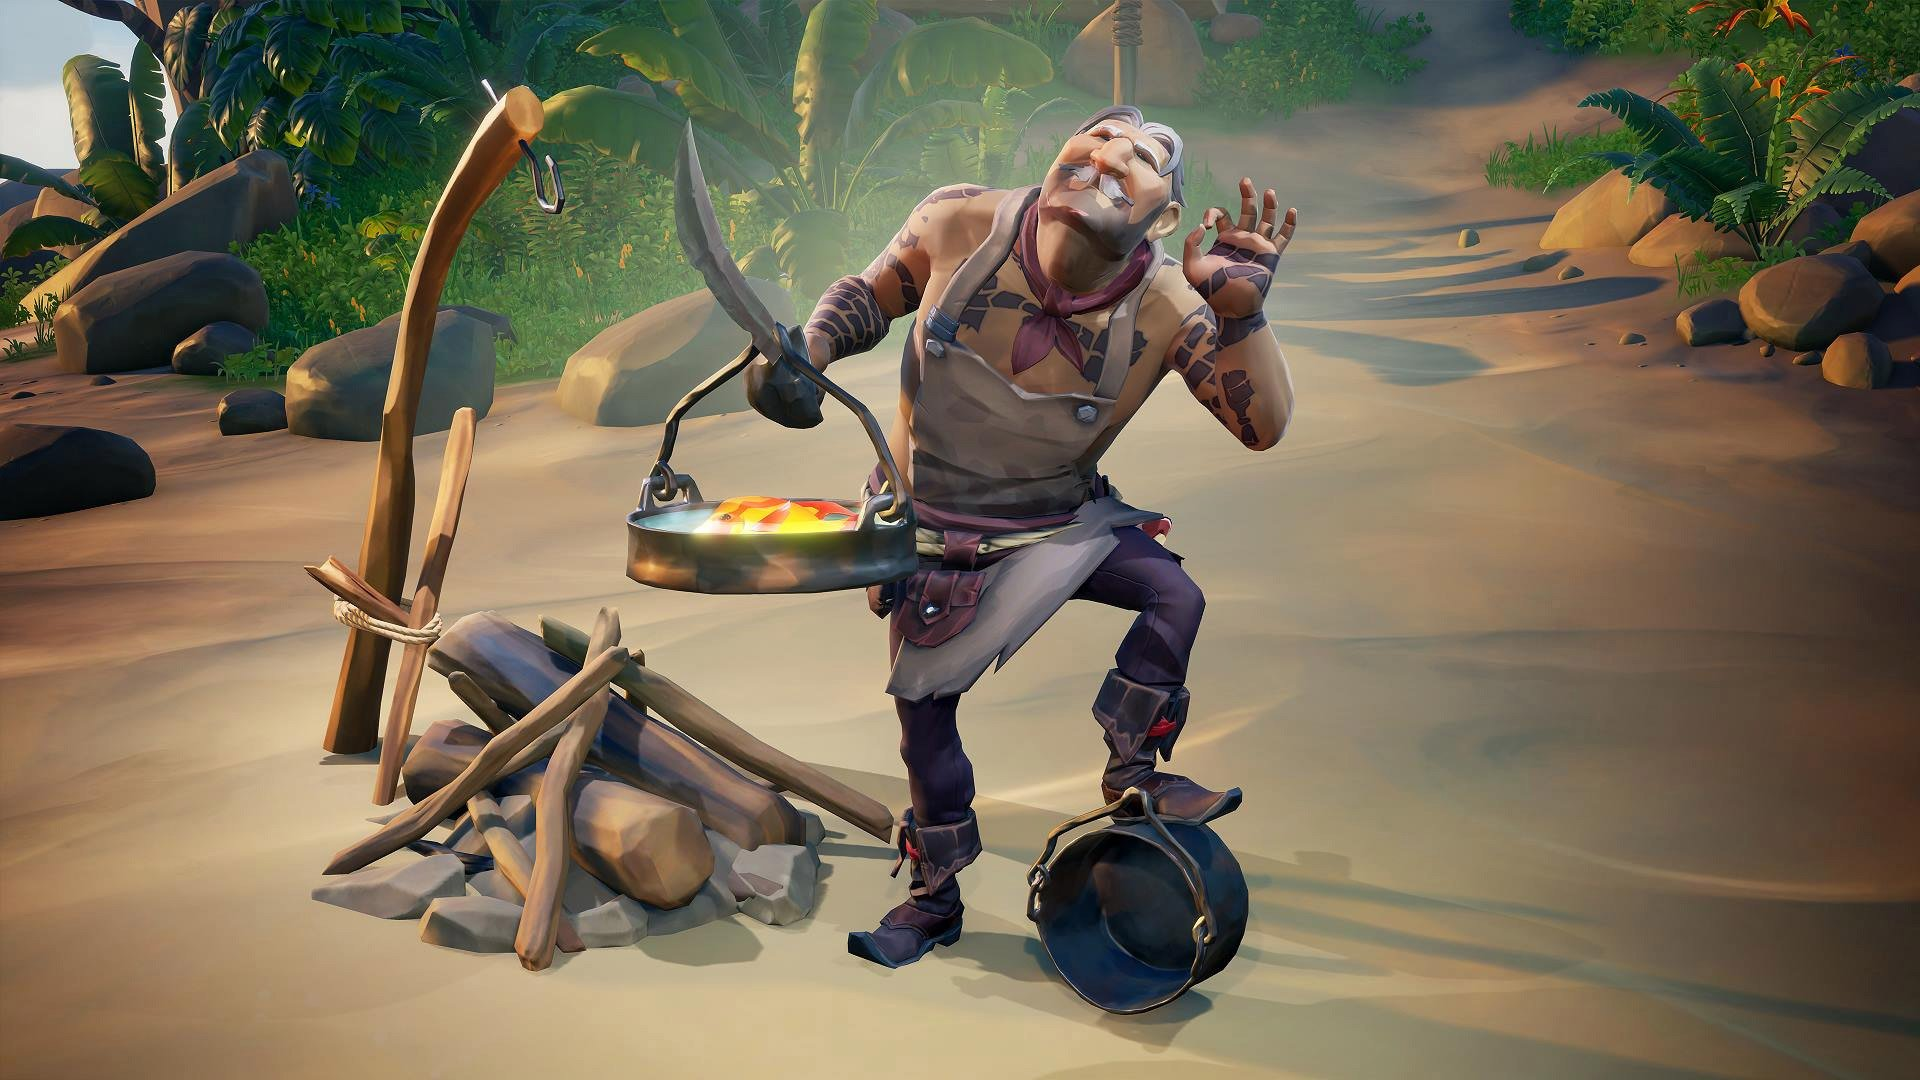 Sea of Thieves pets are coming soon, so start saving screenshot